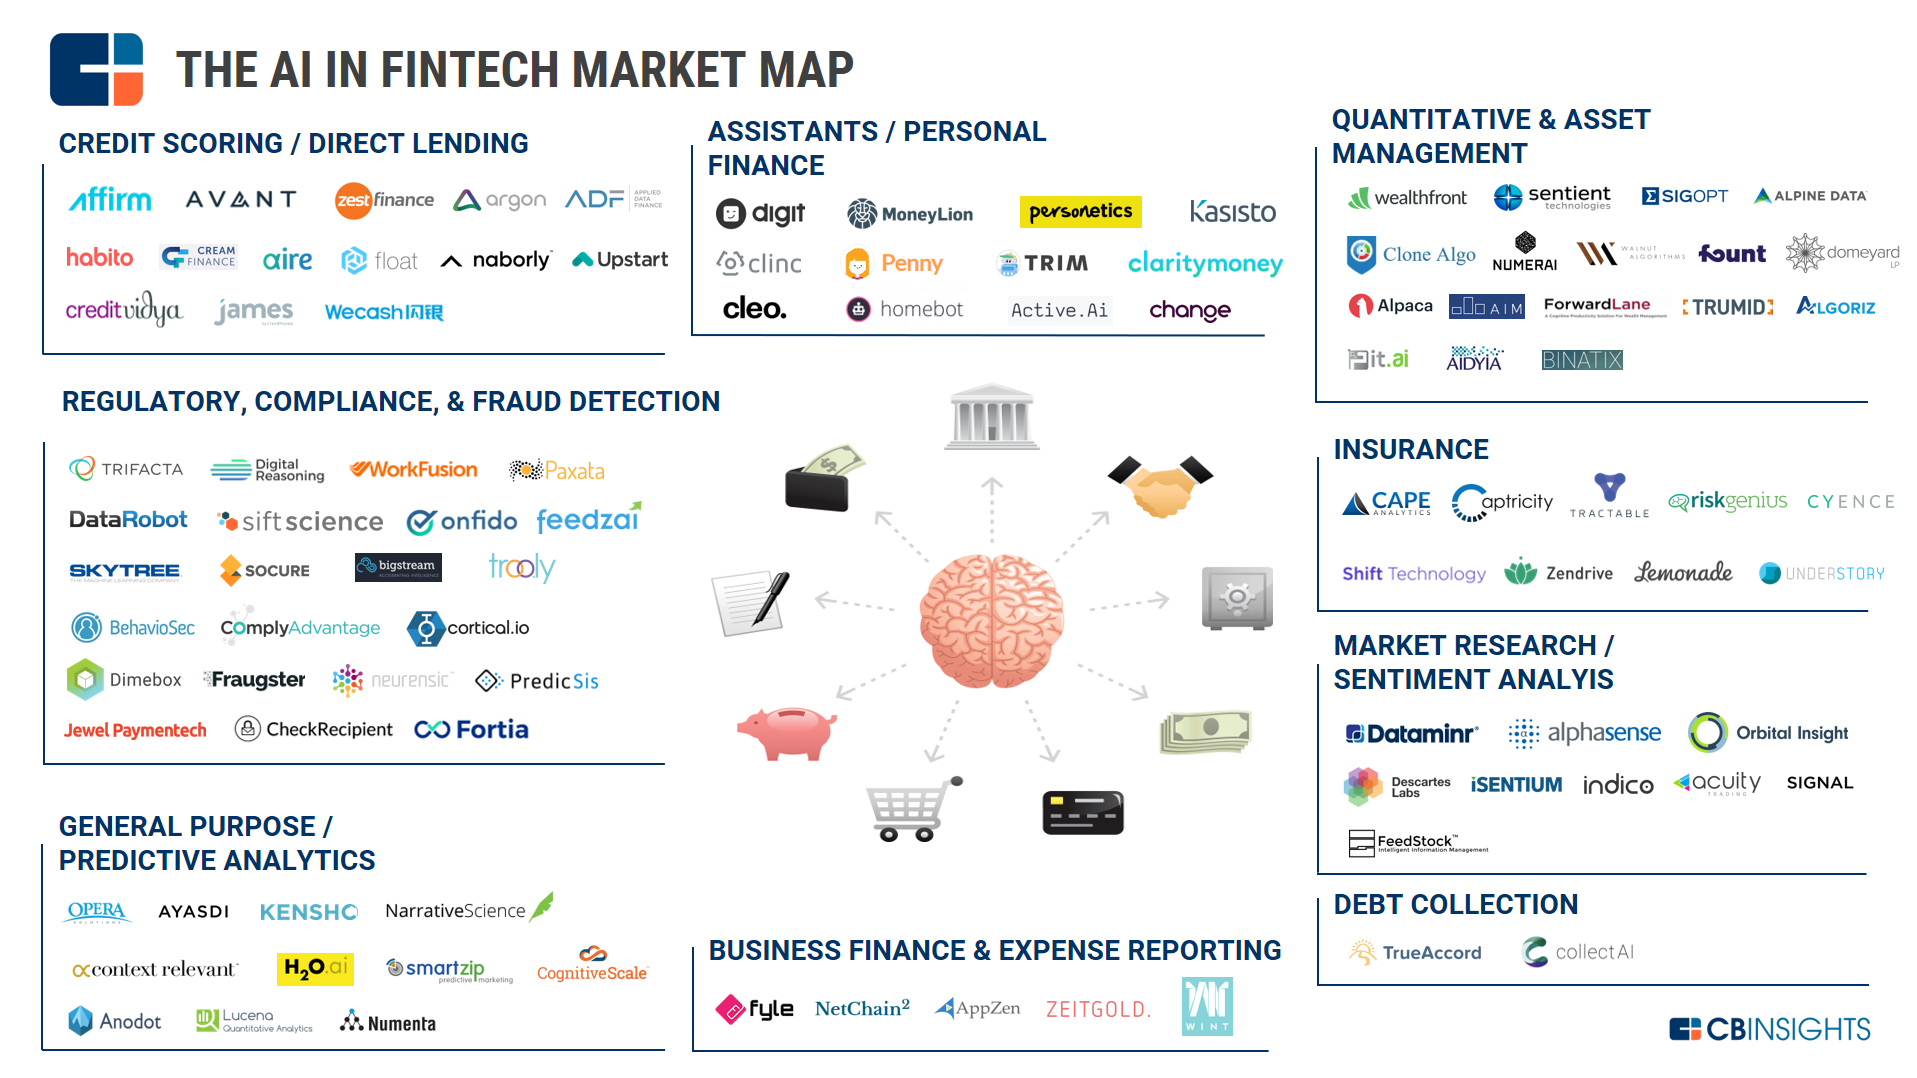 AI in FinTech Market Map Image3